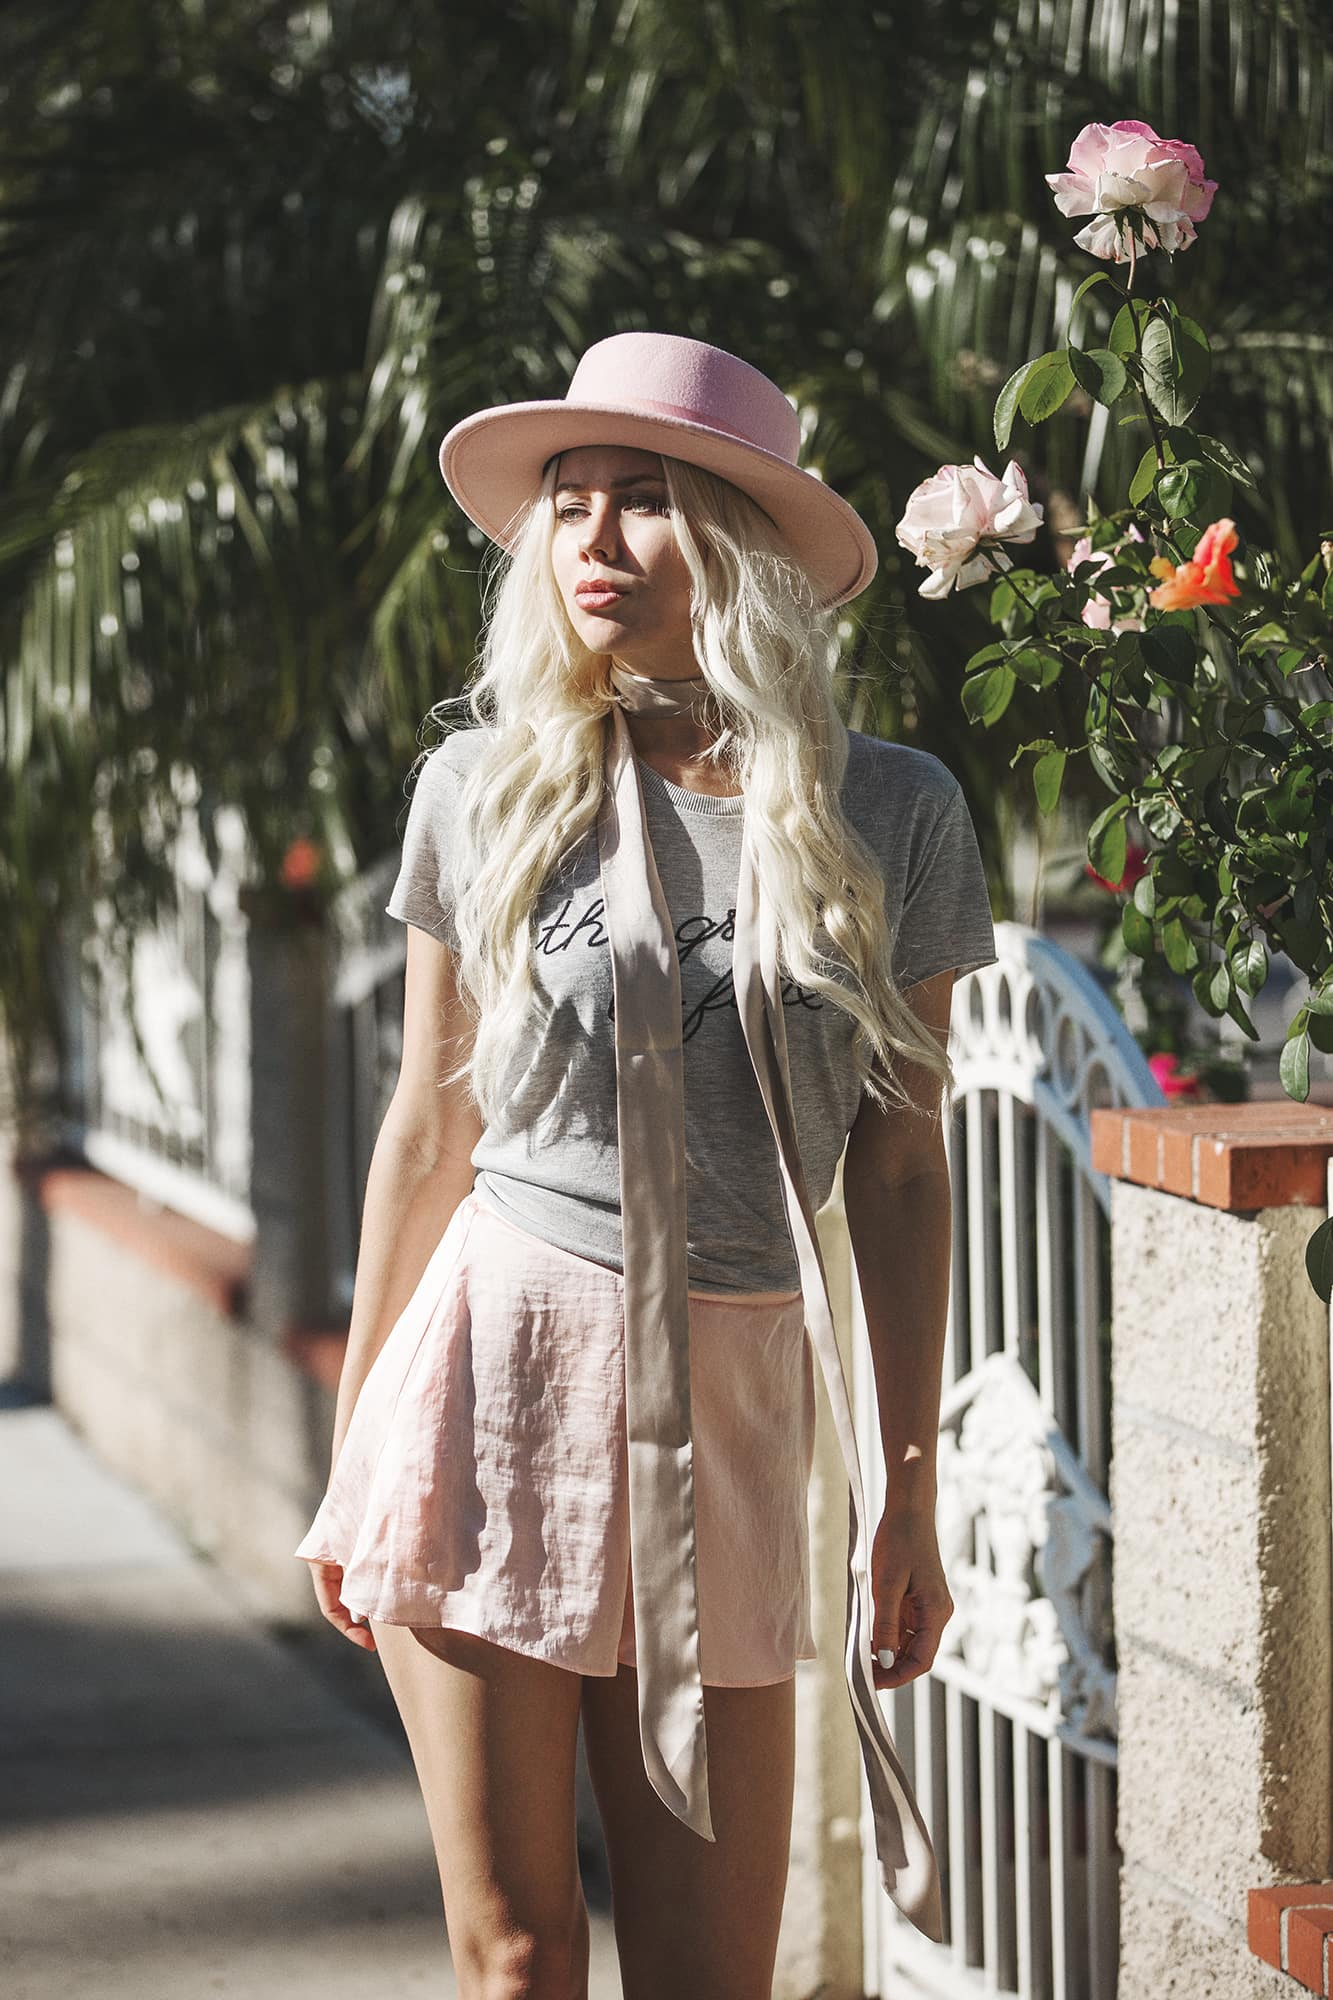 Sarah Loven in Silk Pink Shorts and Scarf